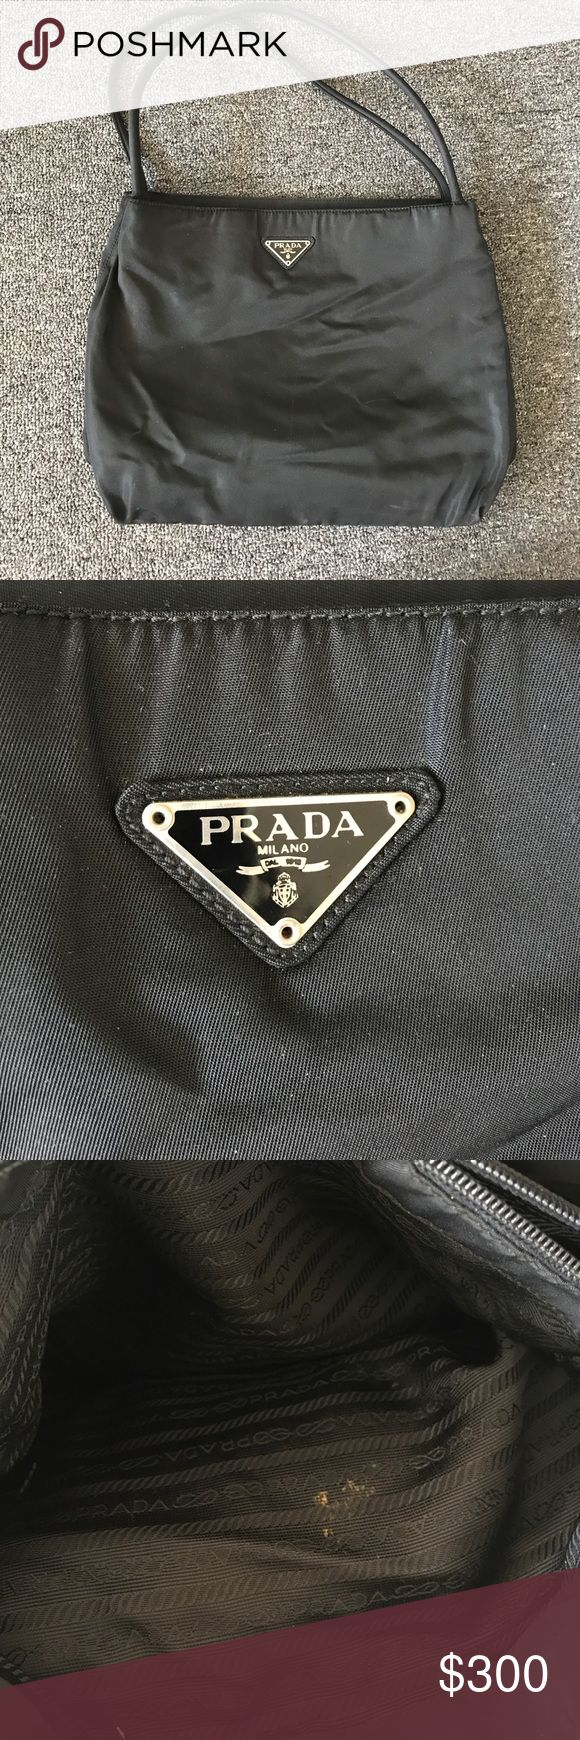 Black fabric Prada tote bag Prada tote bag in black fabric. Some wear. Missing zipper pull on interior pocket, and stain in the interior as well. Small scratch on bottom, otherwise in good condition. 2 interior portions plus zipper portion. Prada Bags Totes